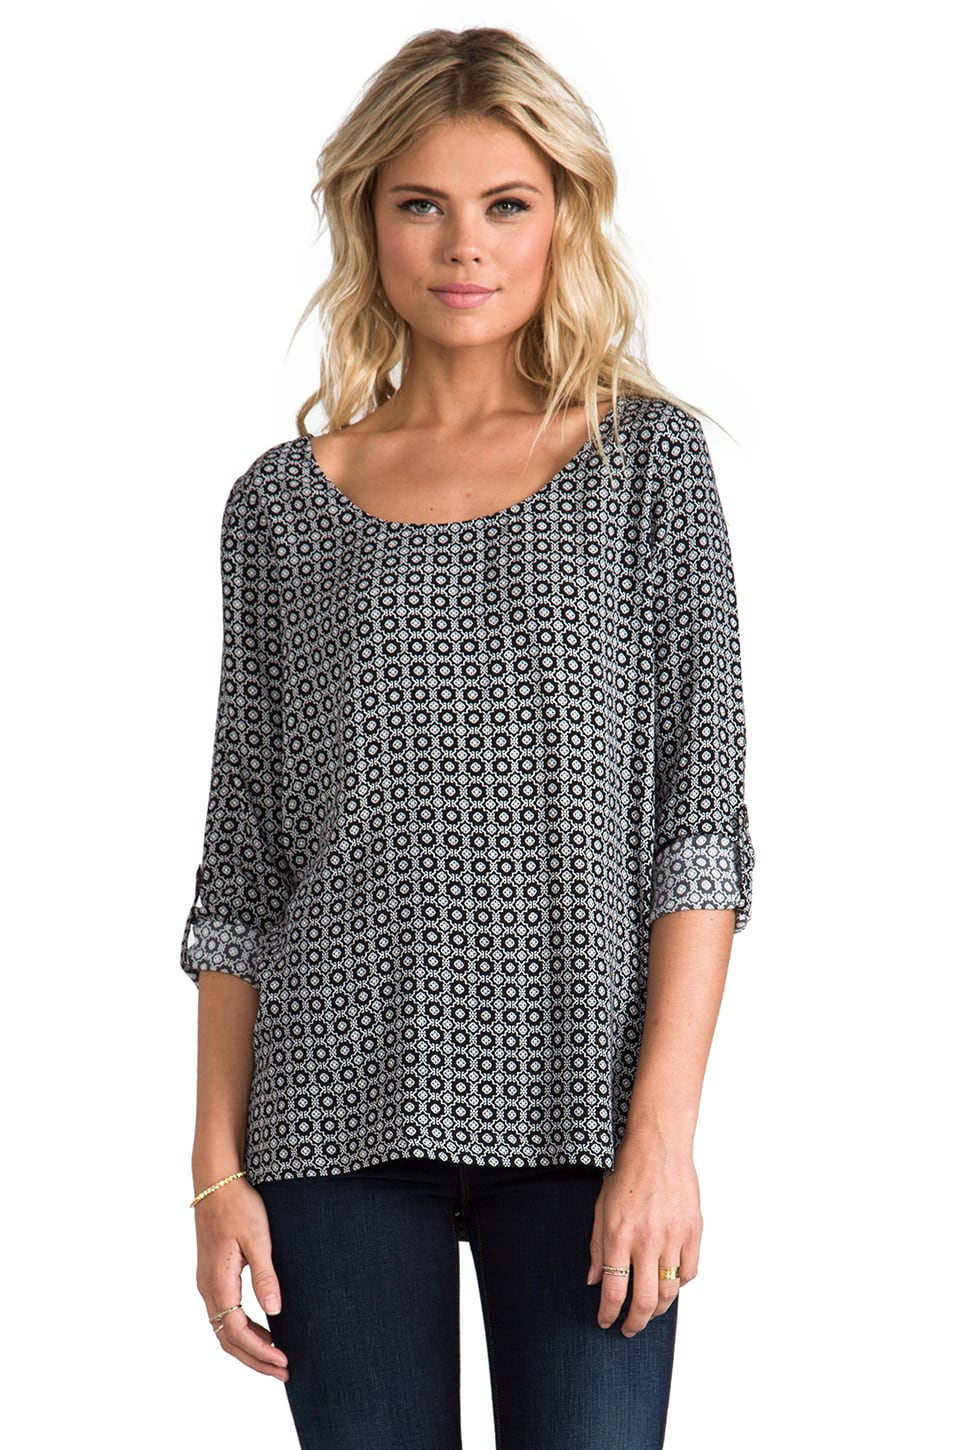 Soft Joie Wyoming B Top in Caviar/Porcelain